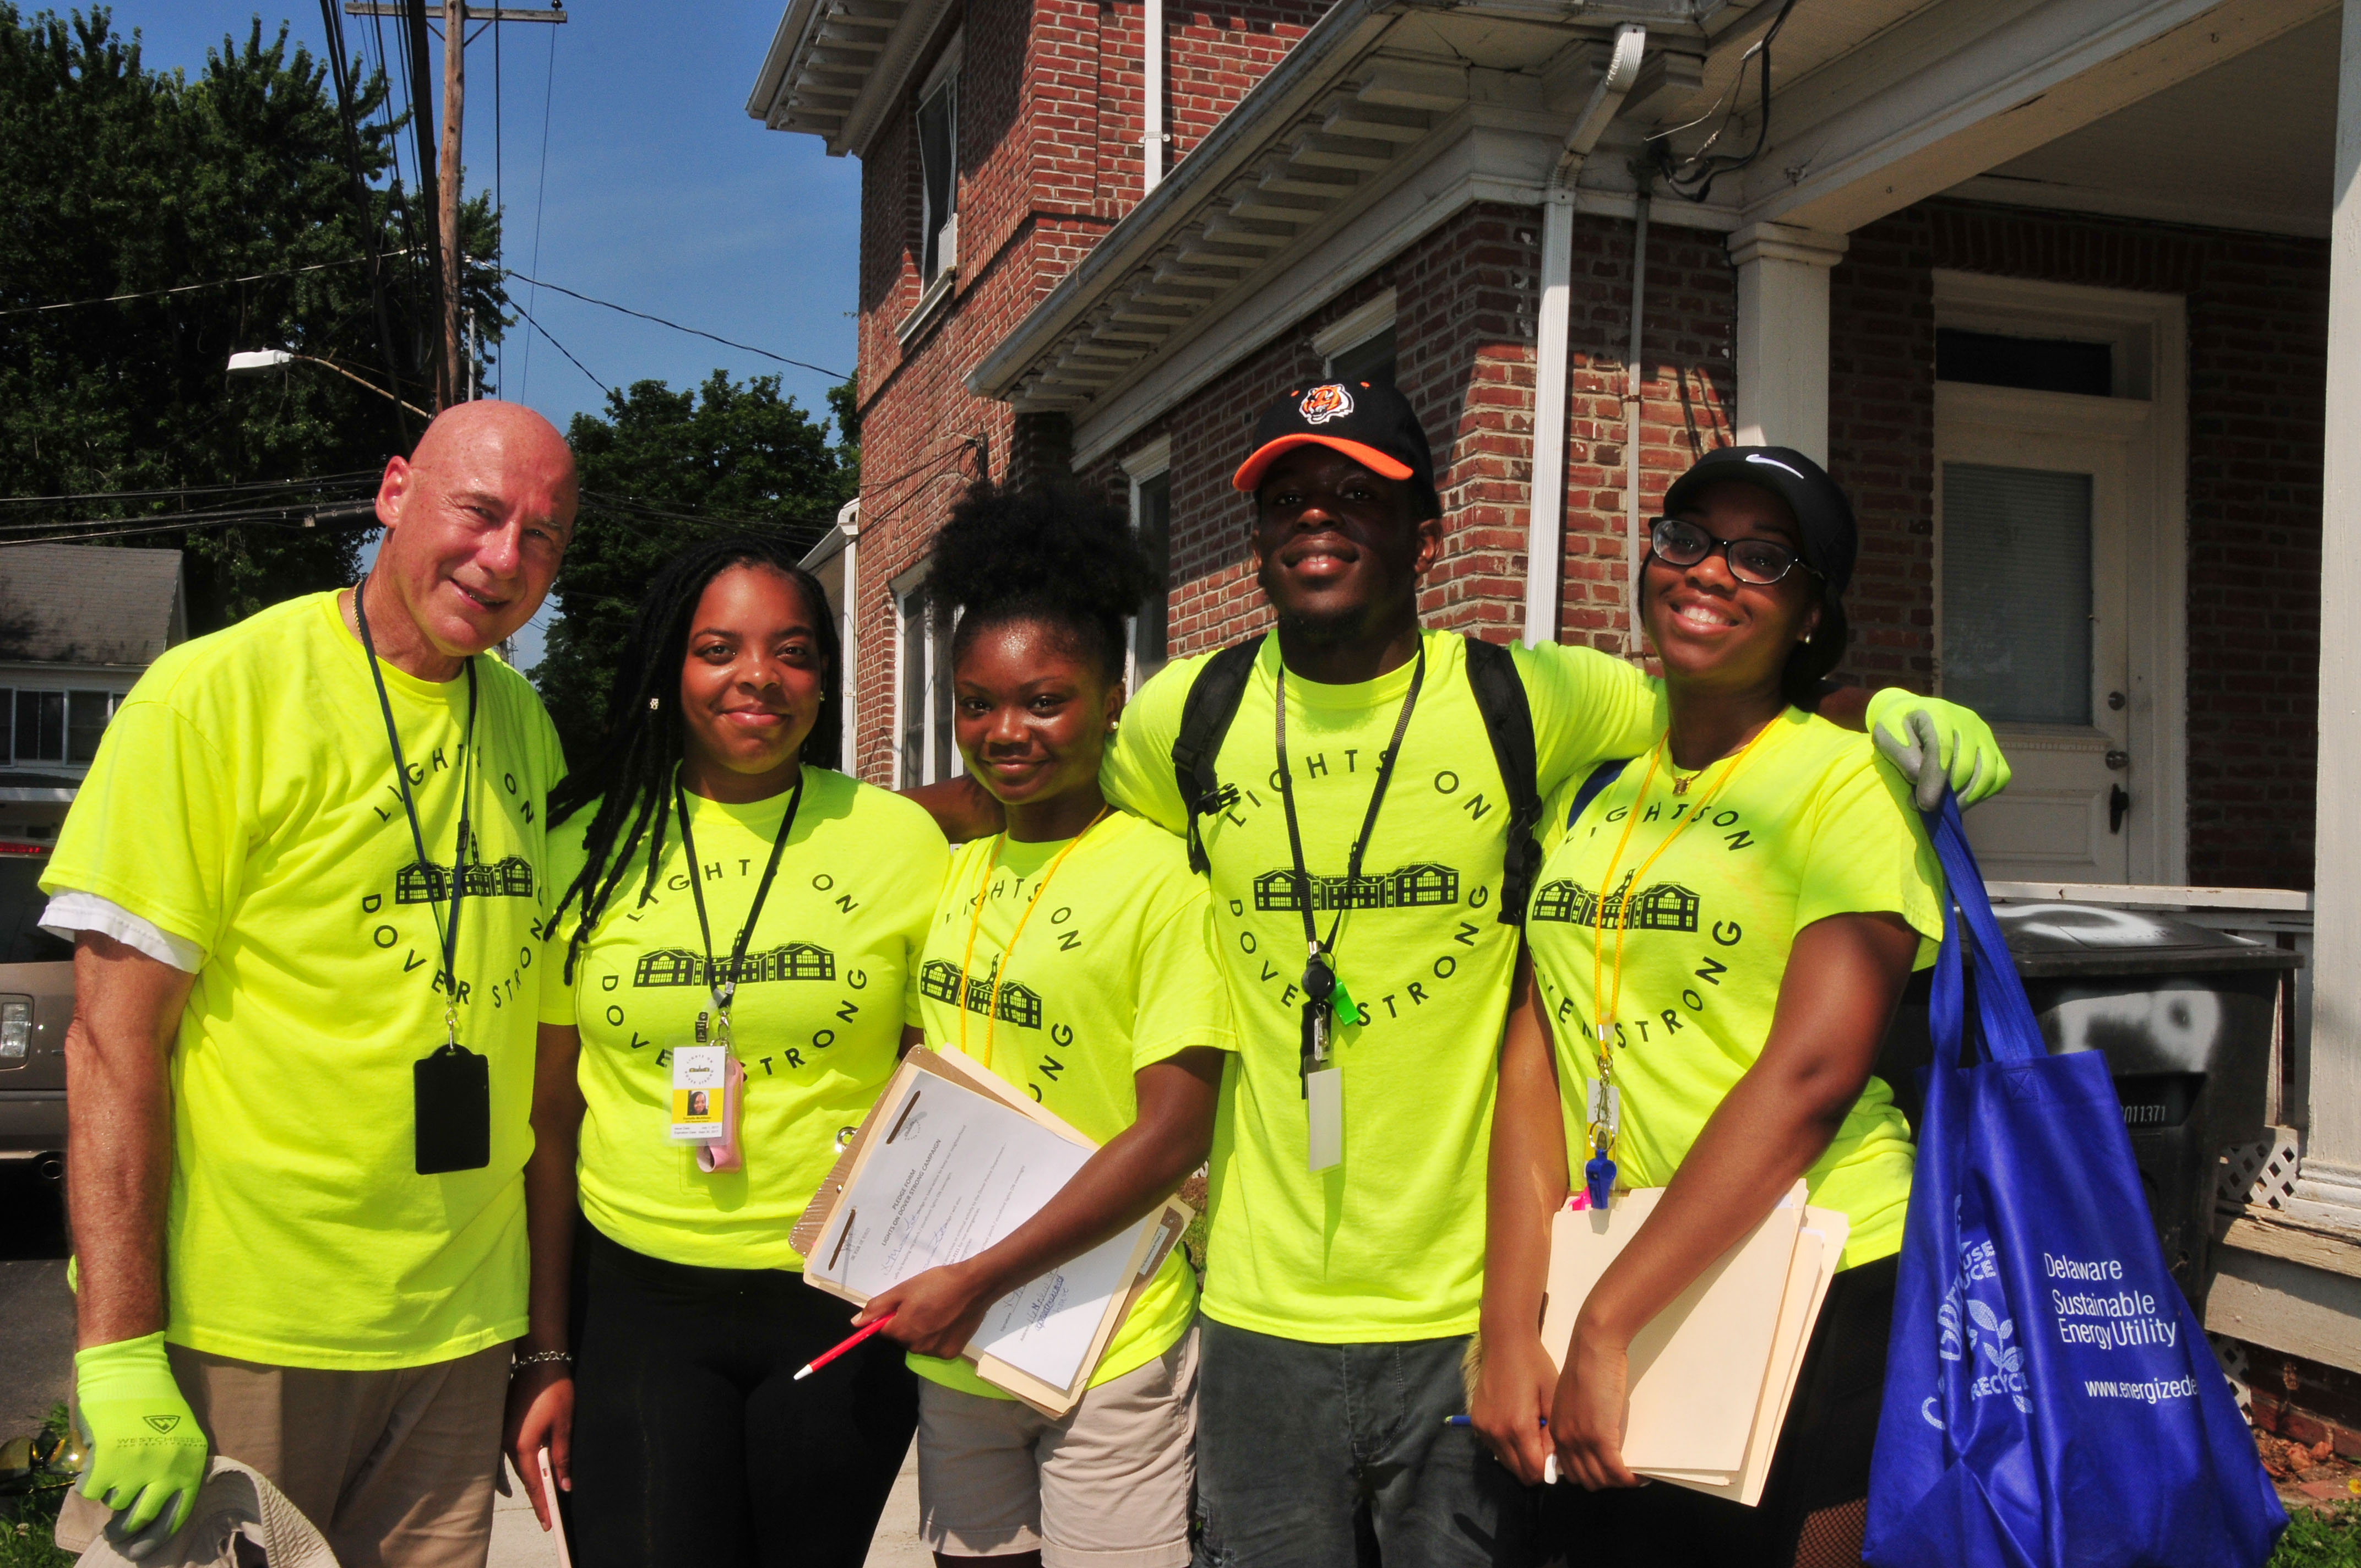 (L-r) Lights on Dover Strong Program team -- Charles Kistler, executive director of the HELP Initiative, with DSU students Danielle McAllister, Dashayna Brown, Eric Wright and Rich Kotter. The team is making a crime-challenged area of Dover safer.